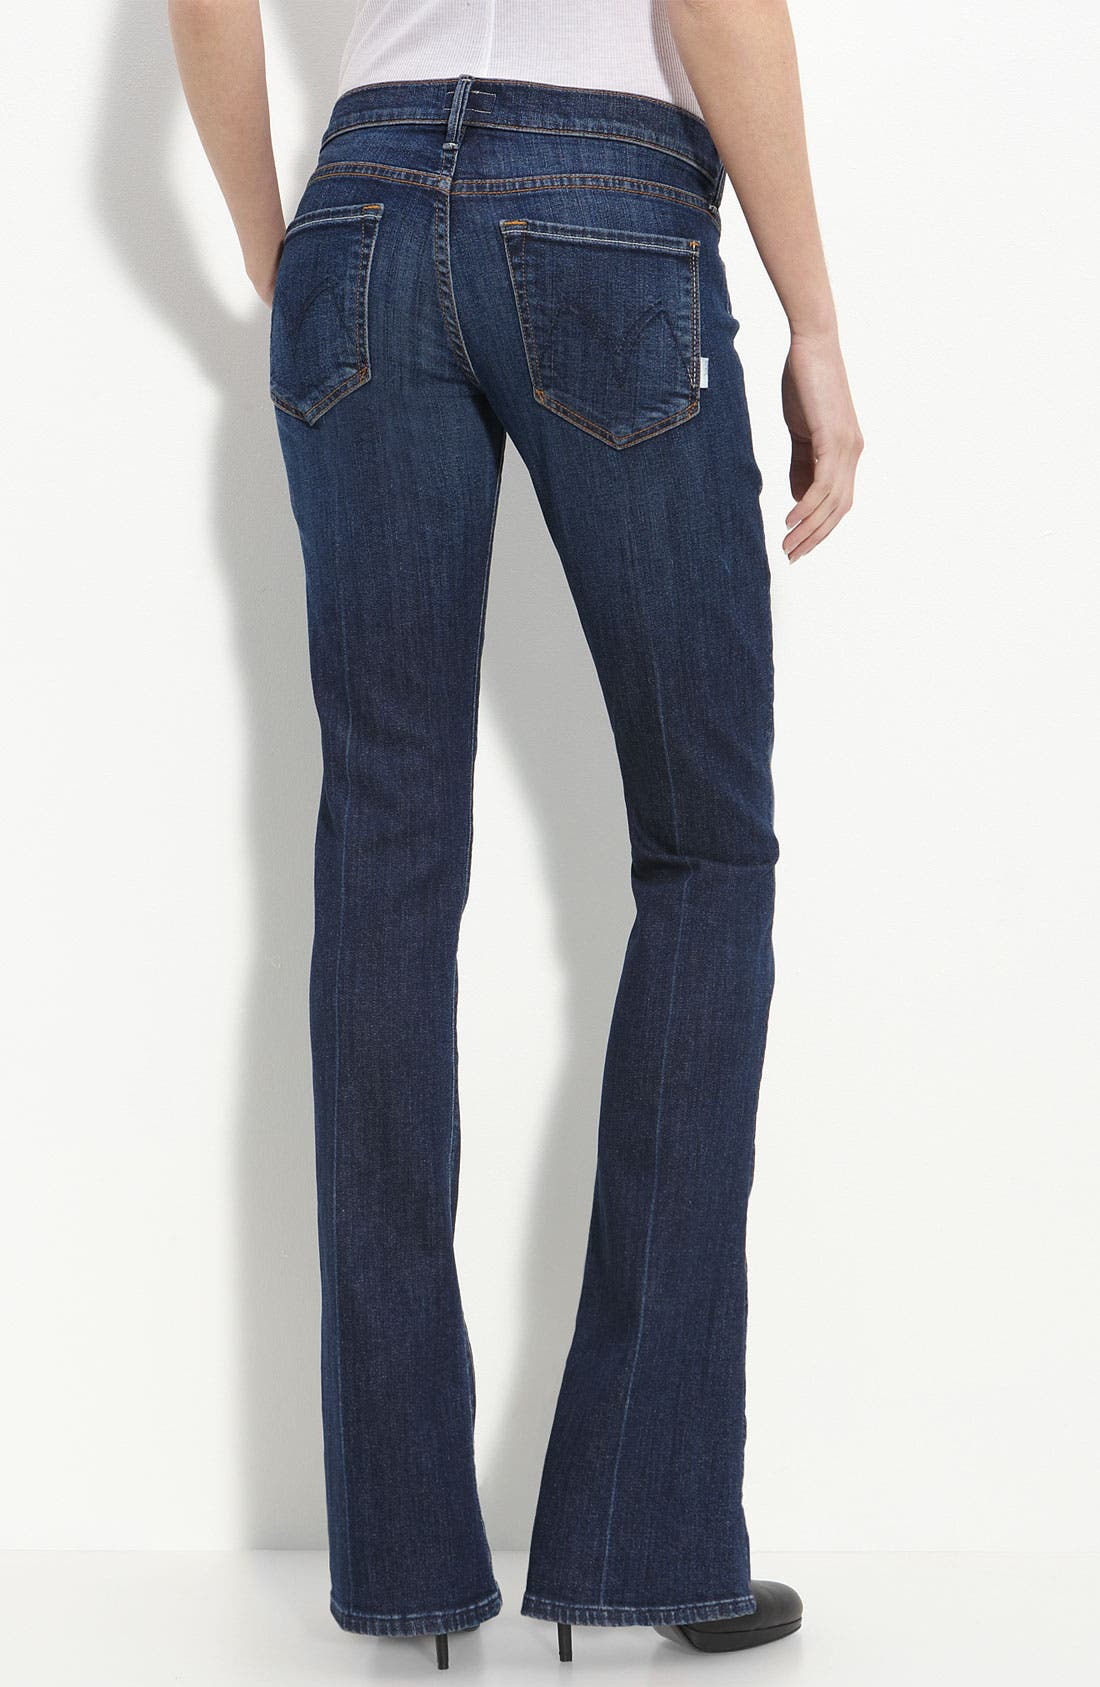 Alternate Image 1 Selected - MOTHER 'The Runaway' Bootcut Stretch Jeans (Flowers from the Storm)